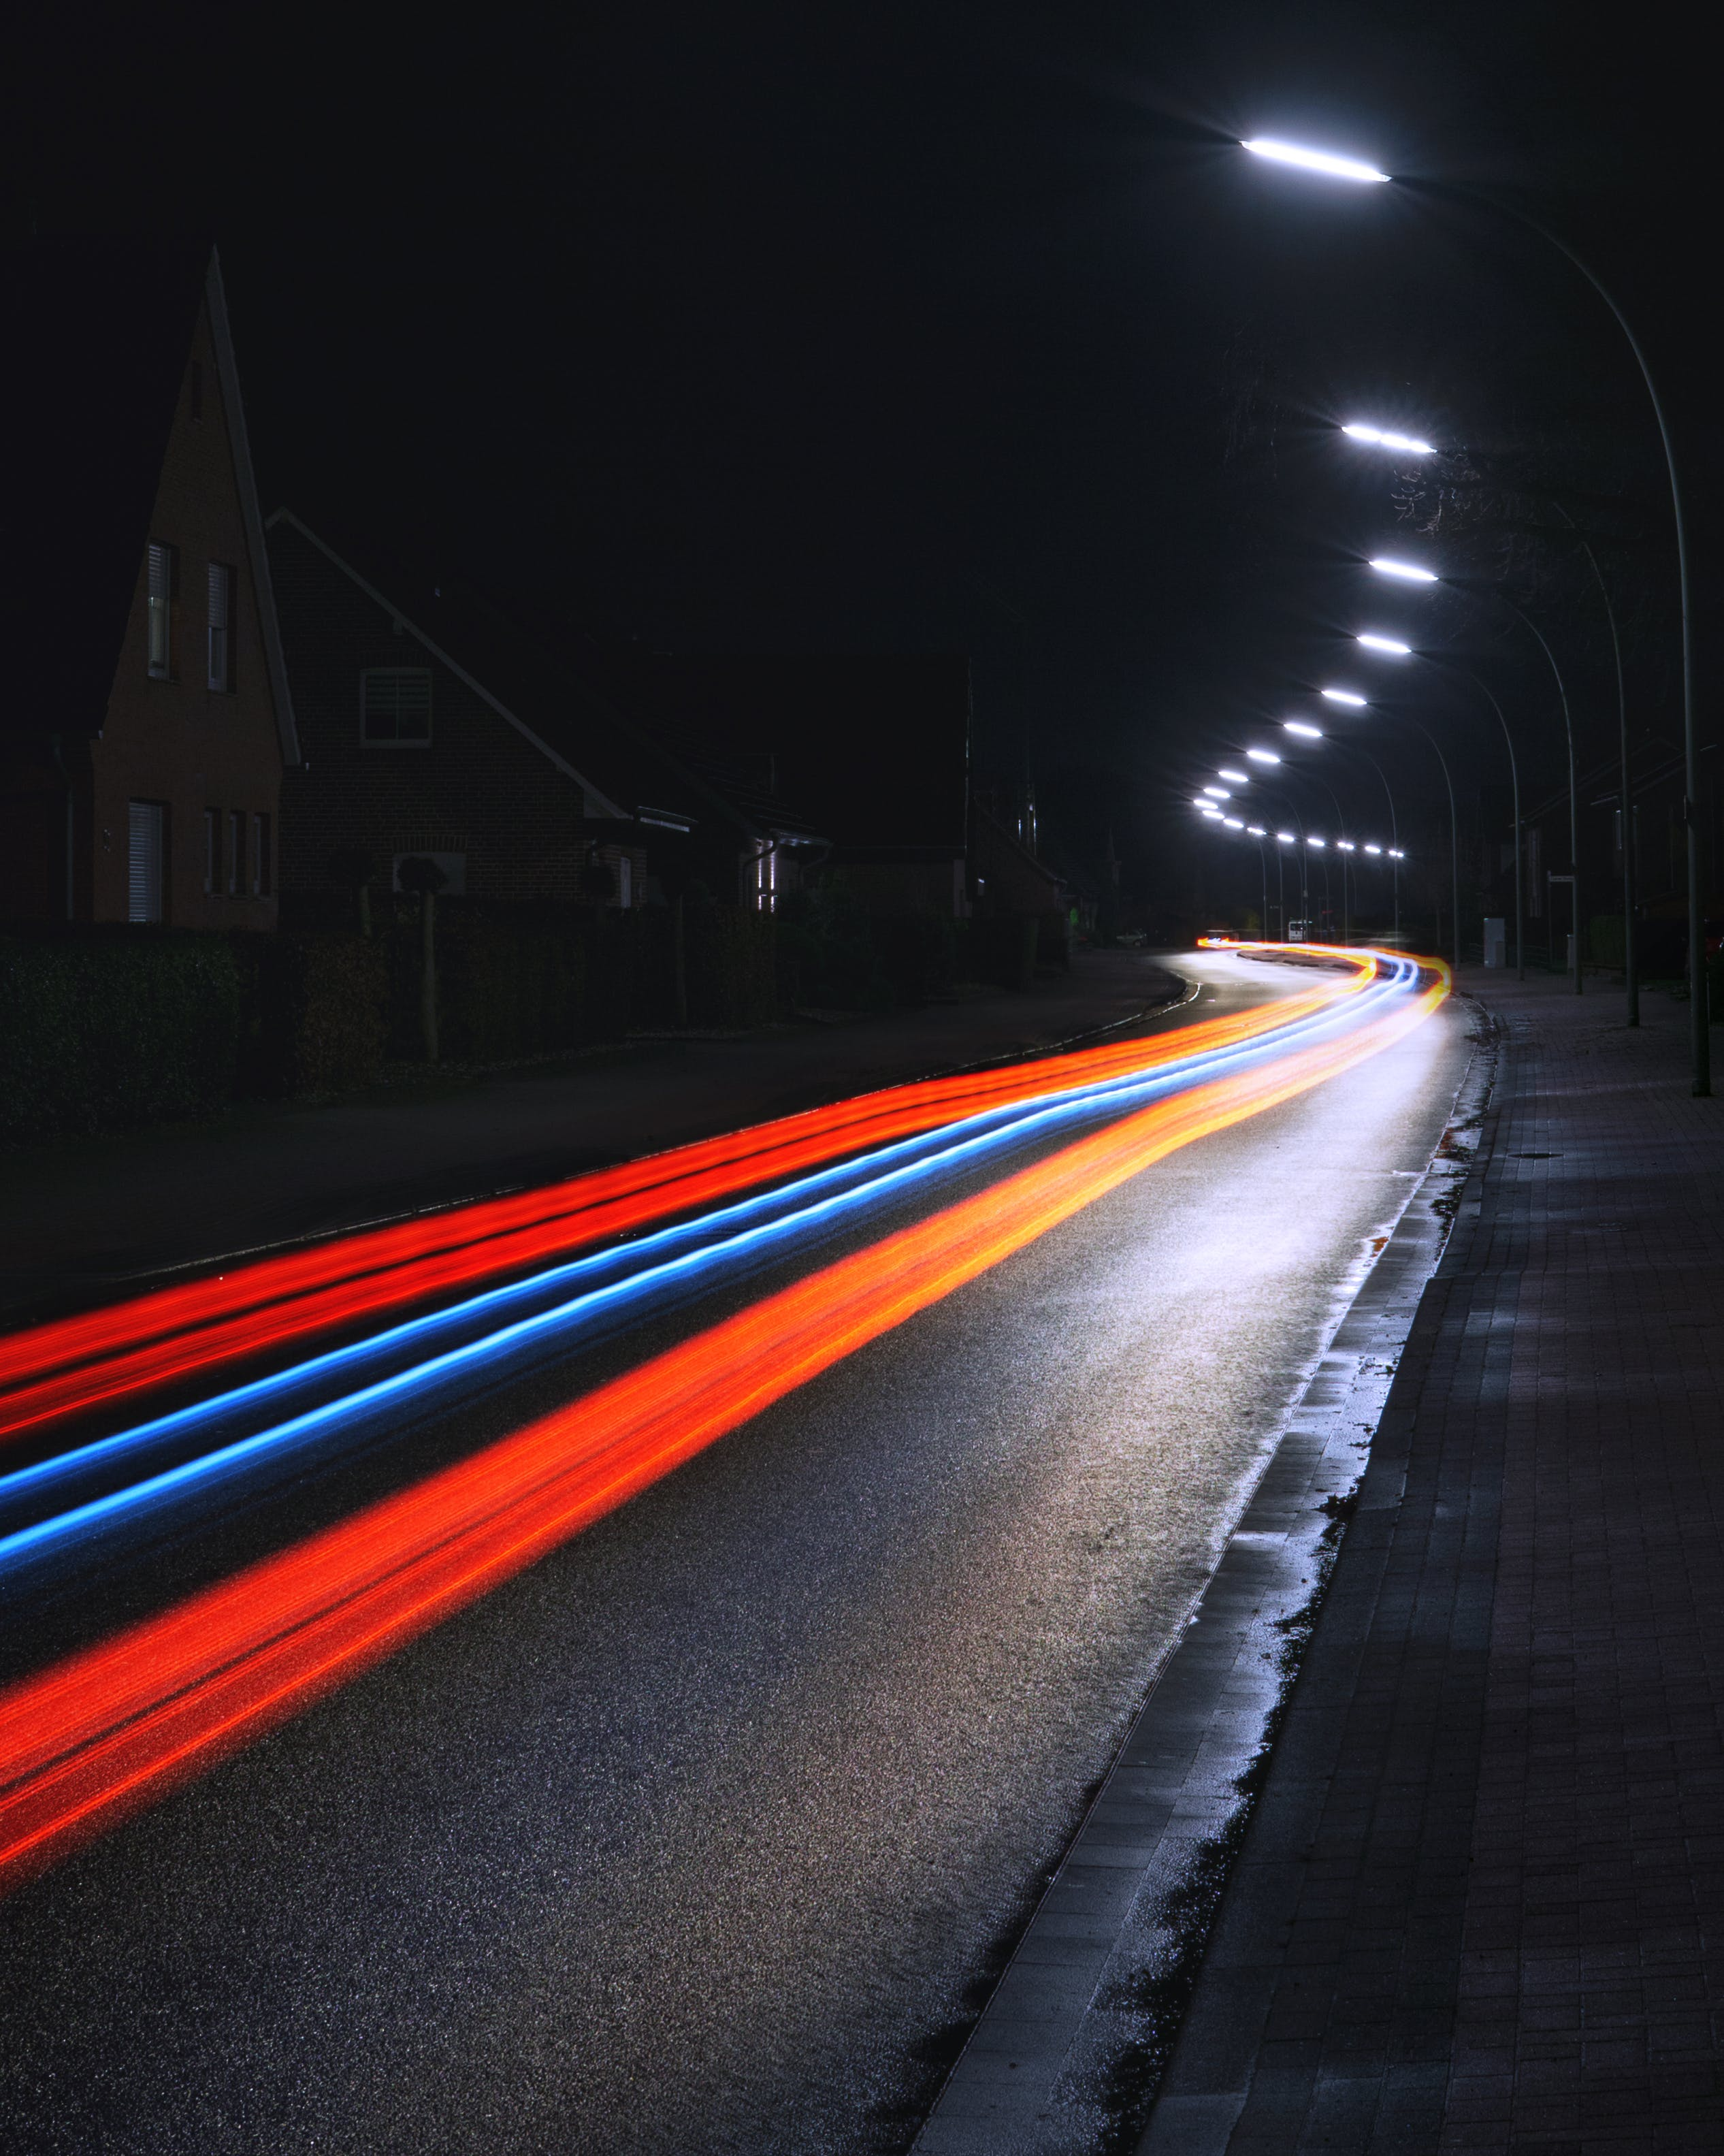 Time Lapse Photo of Road at Night